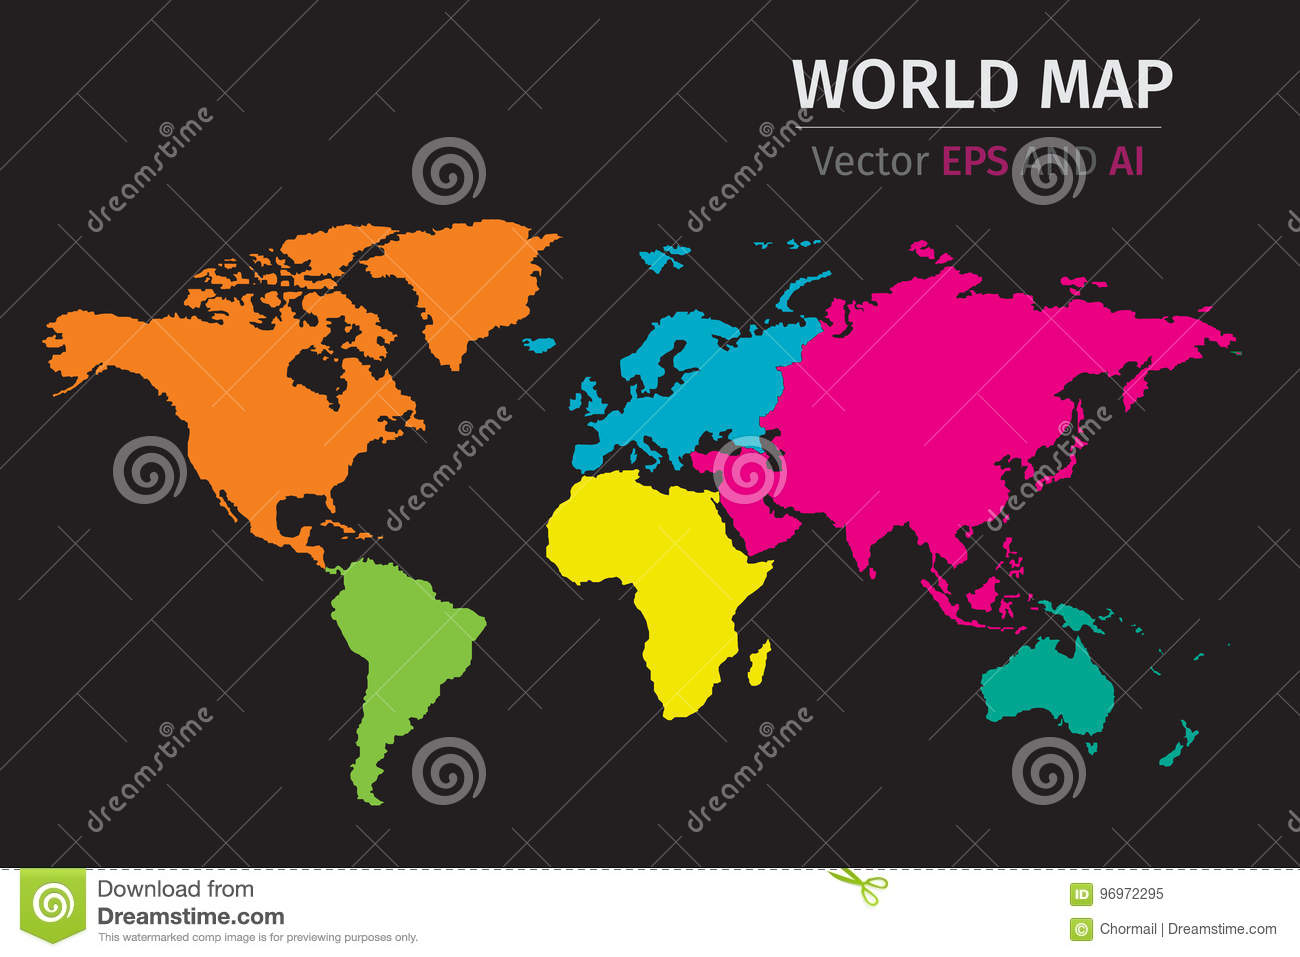 Vector political world map using different colors on each continent vector political world map using different colors on each continent gumiabroncs Image collections